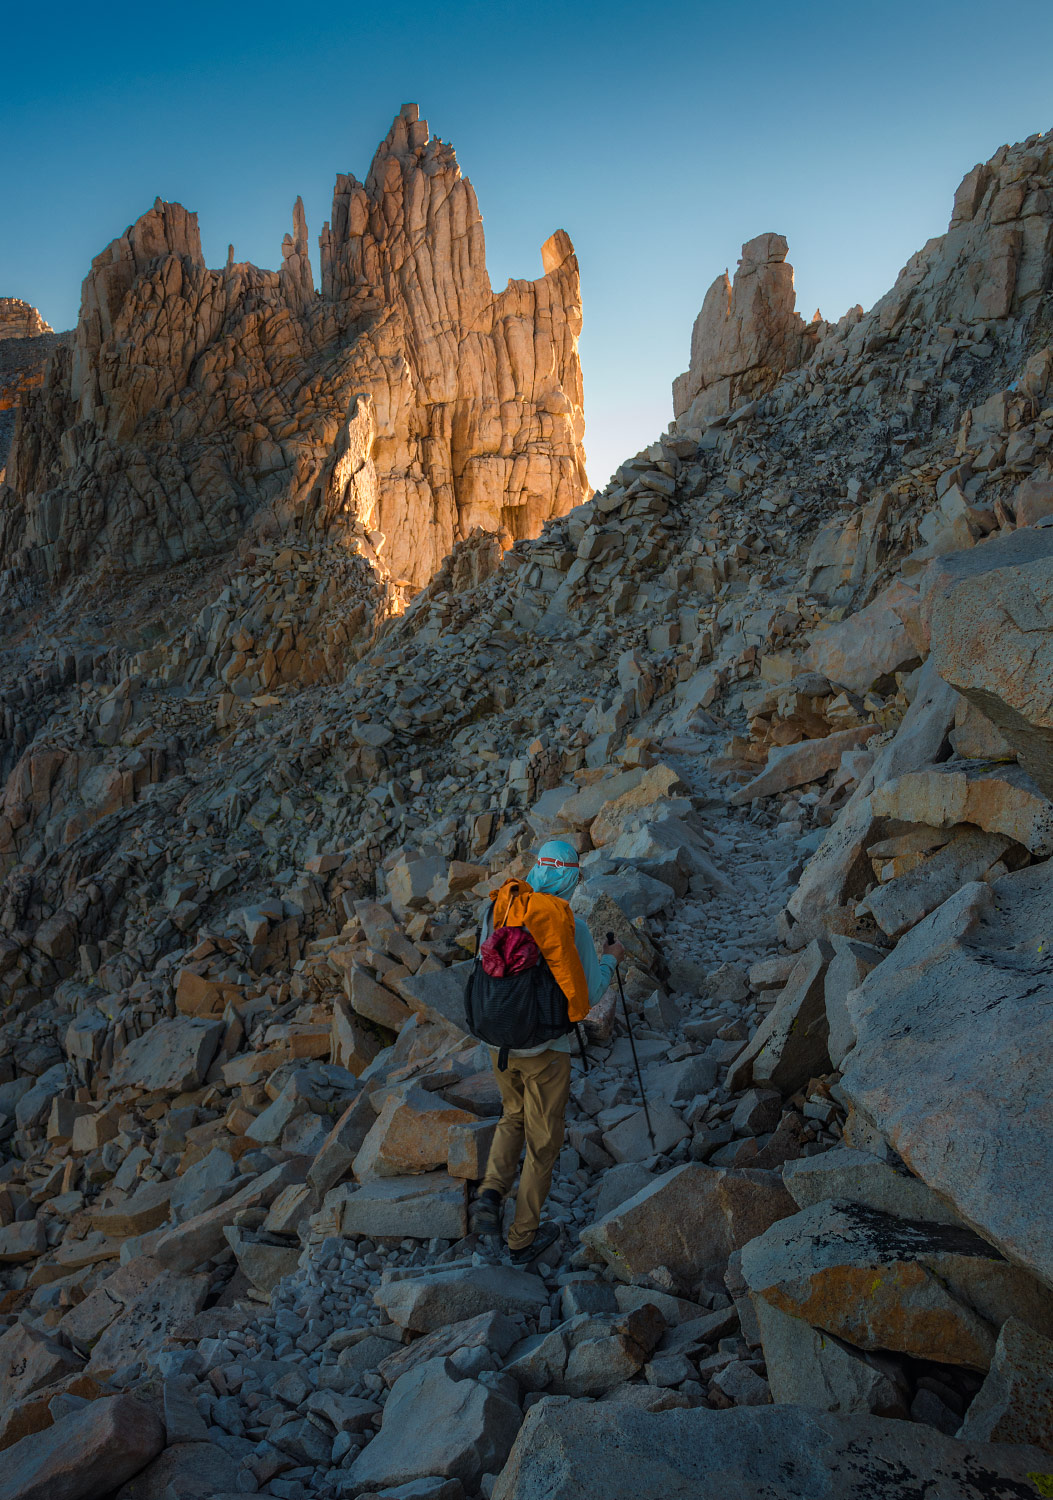 Mount Whitney sunrise summit, Inyo, California, Pacific Crest Trail; 2018.